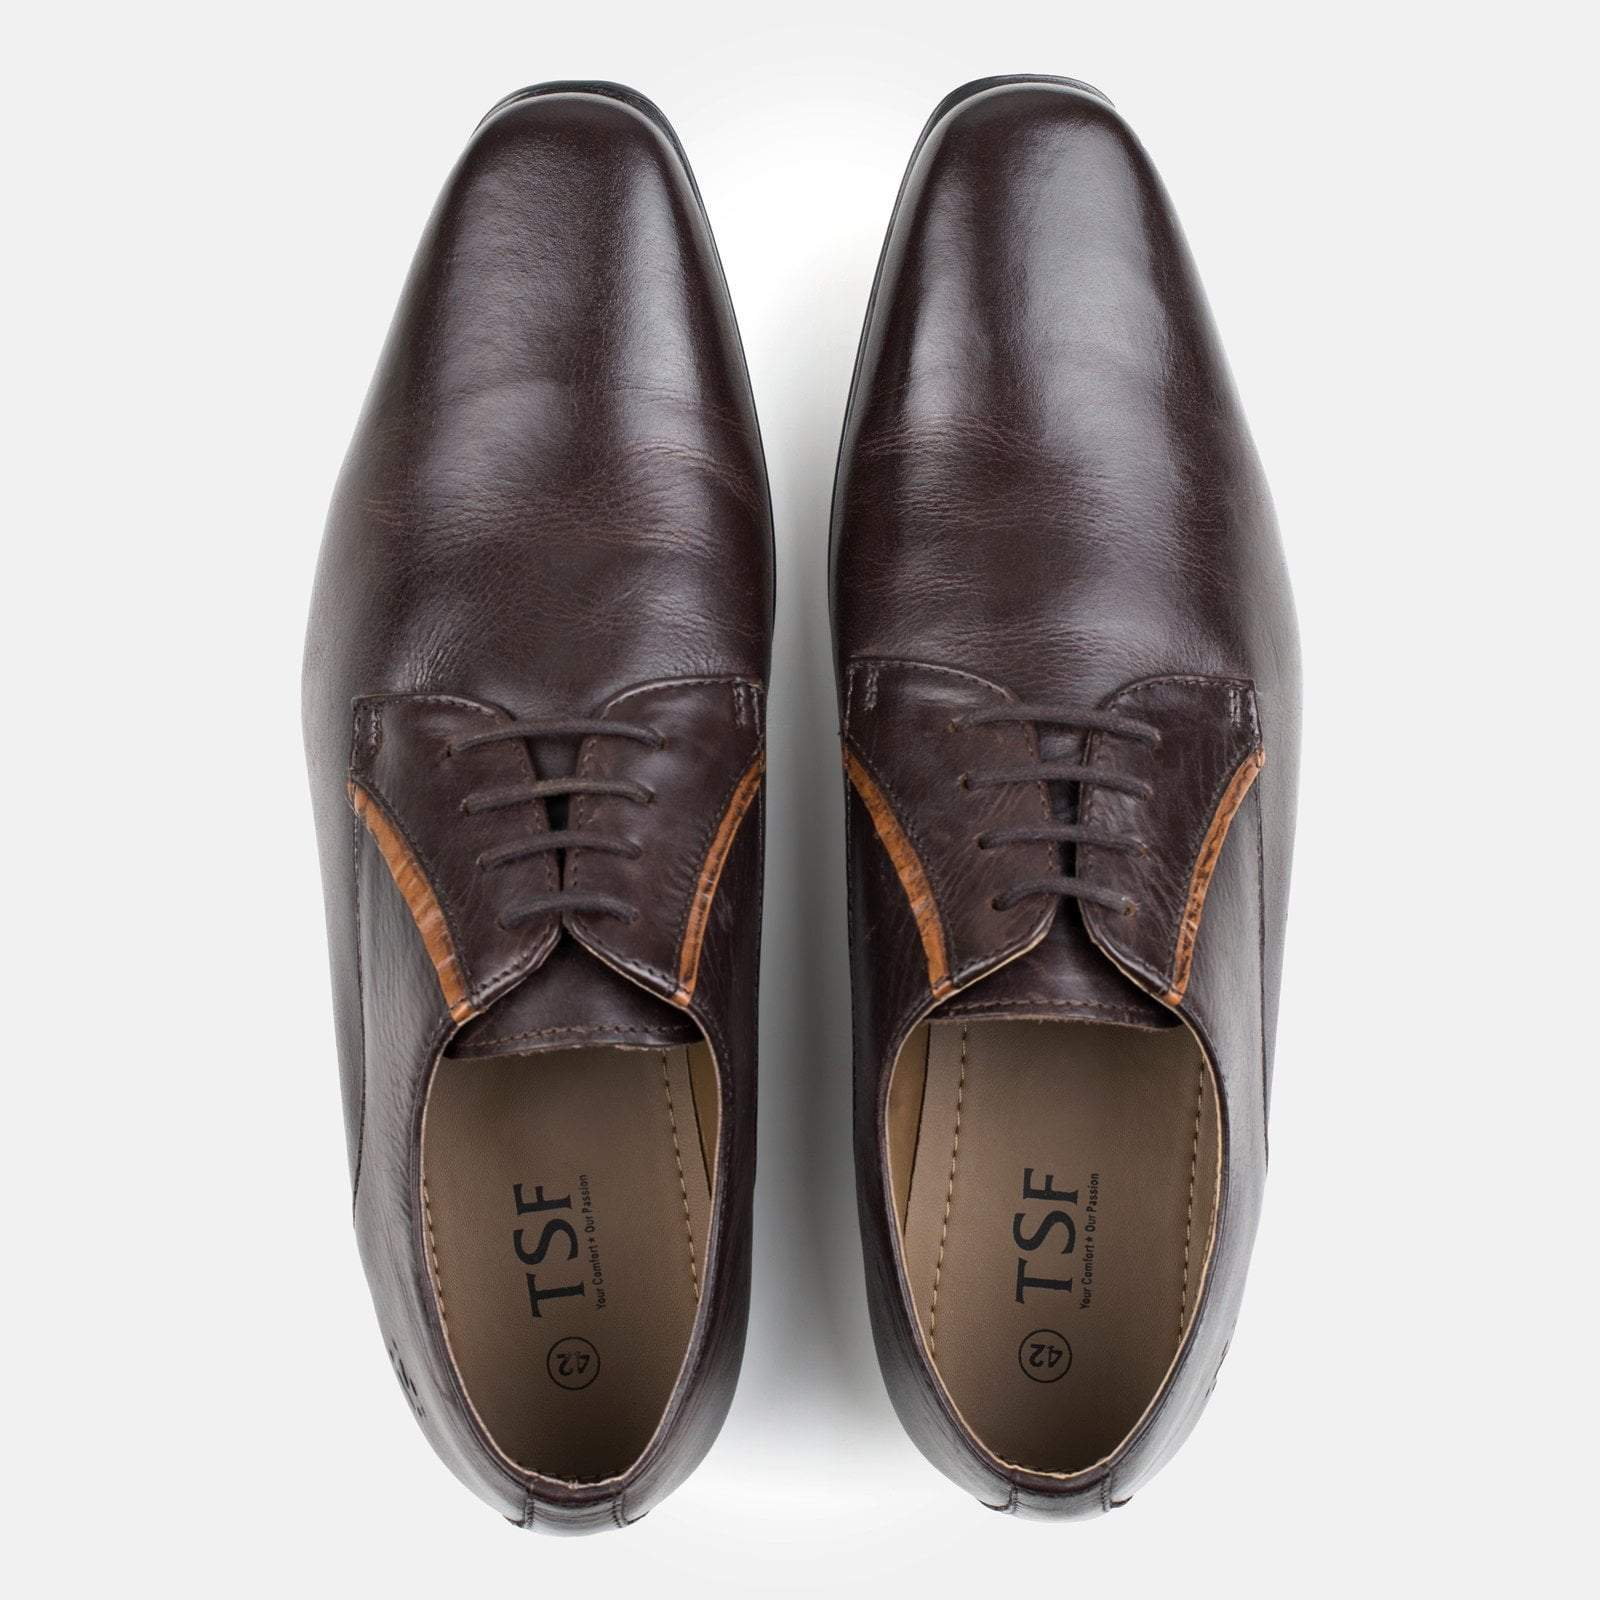 BOND BROWN LEATHER DERBY SHOE